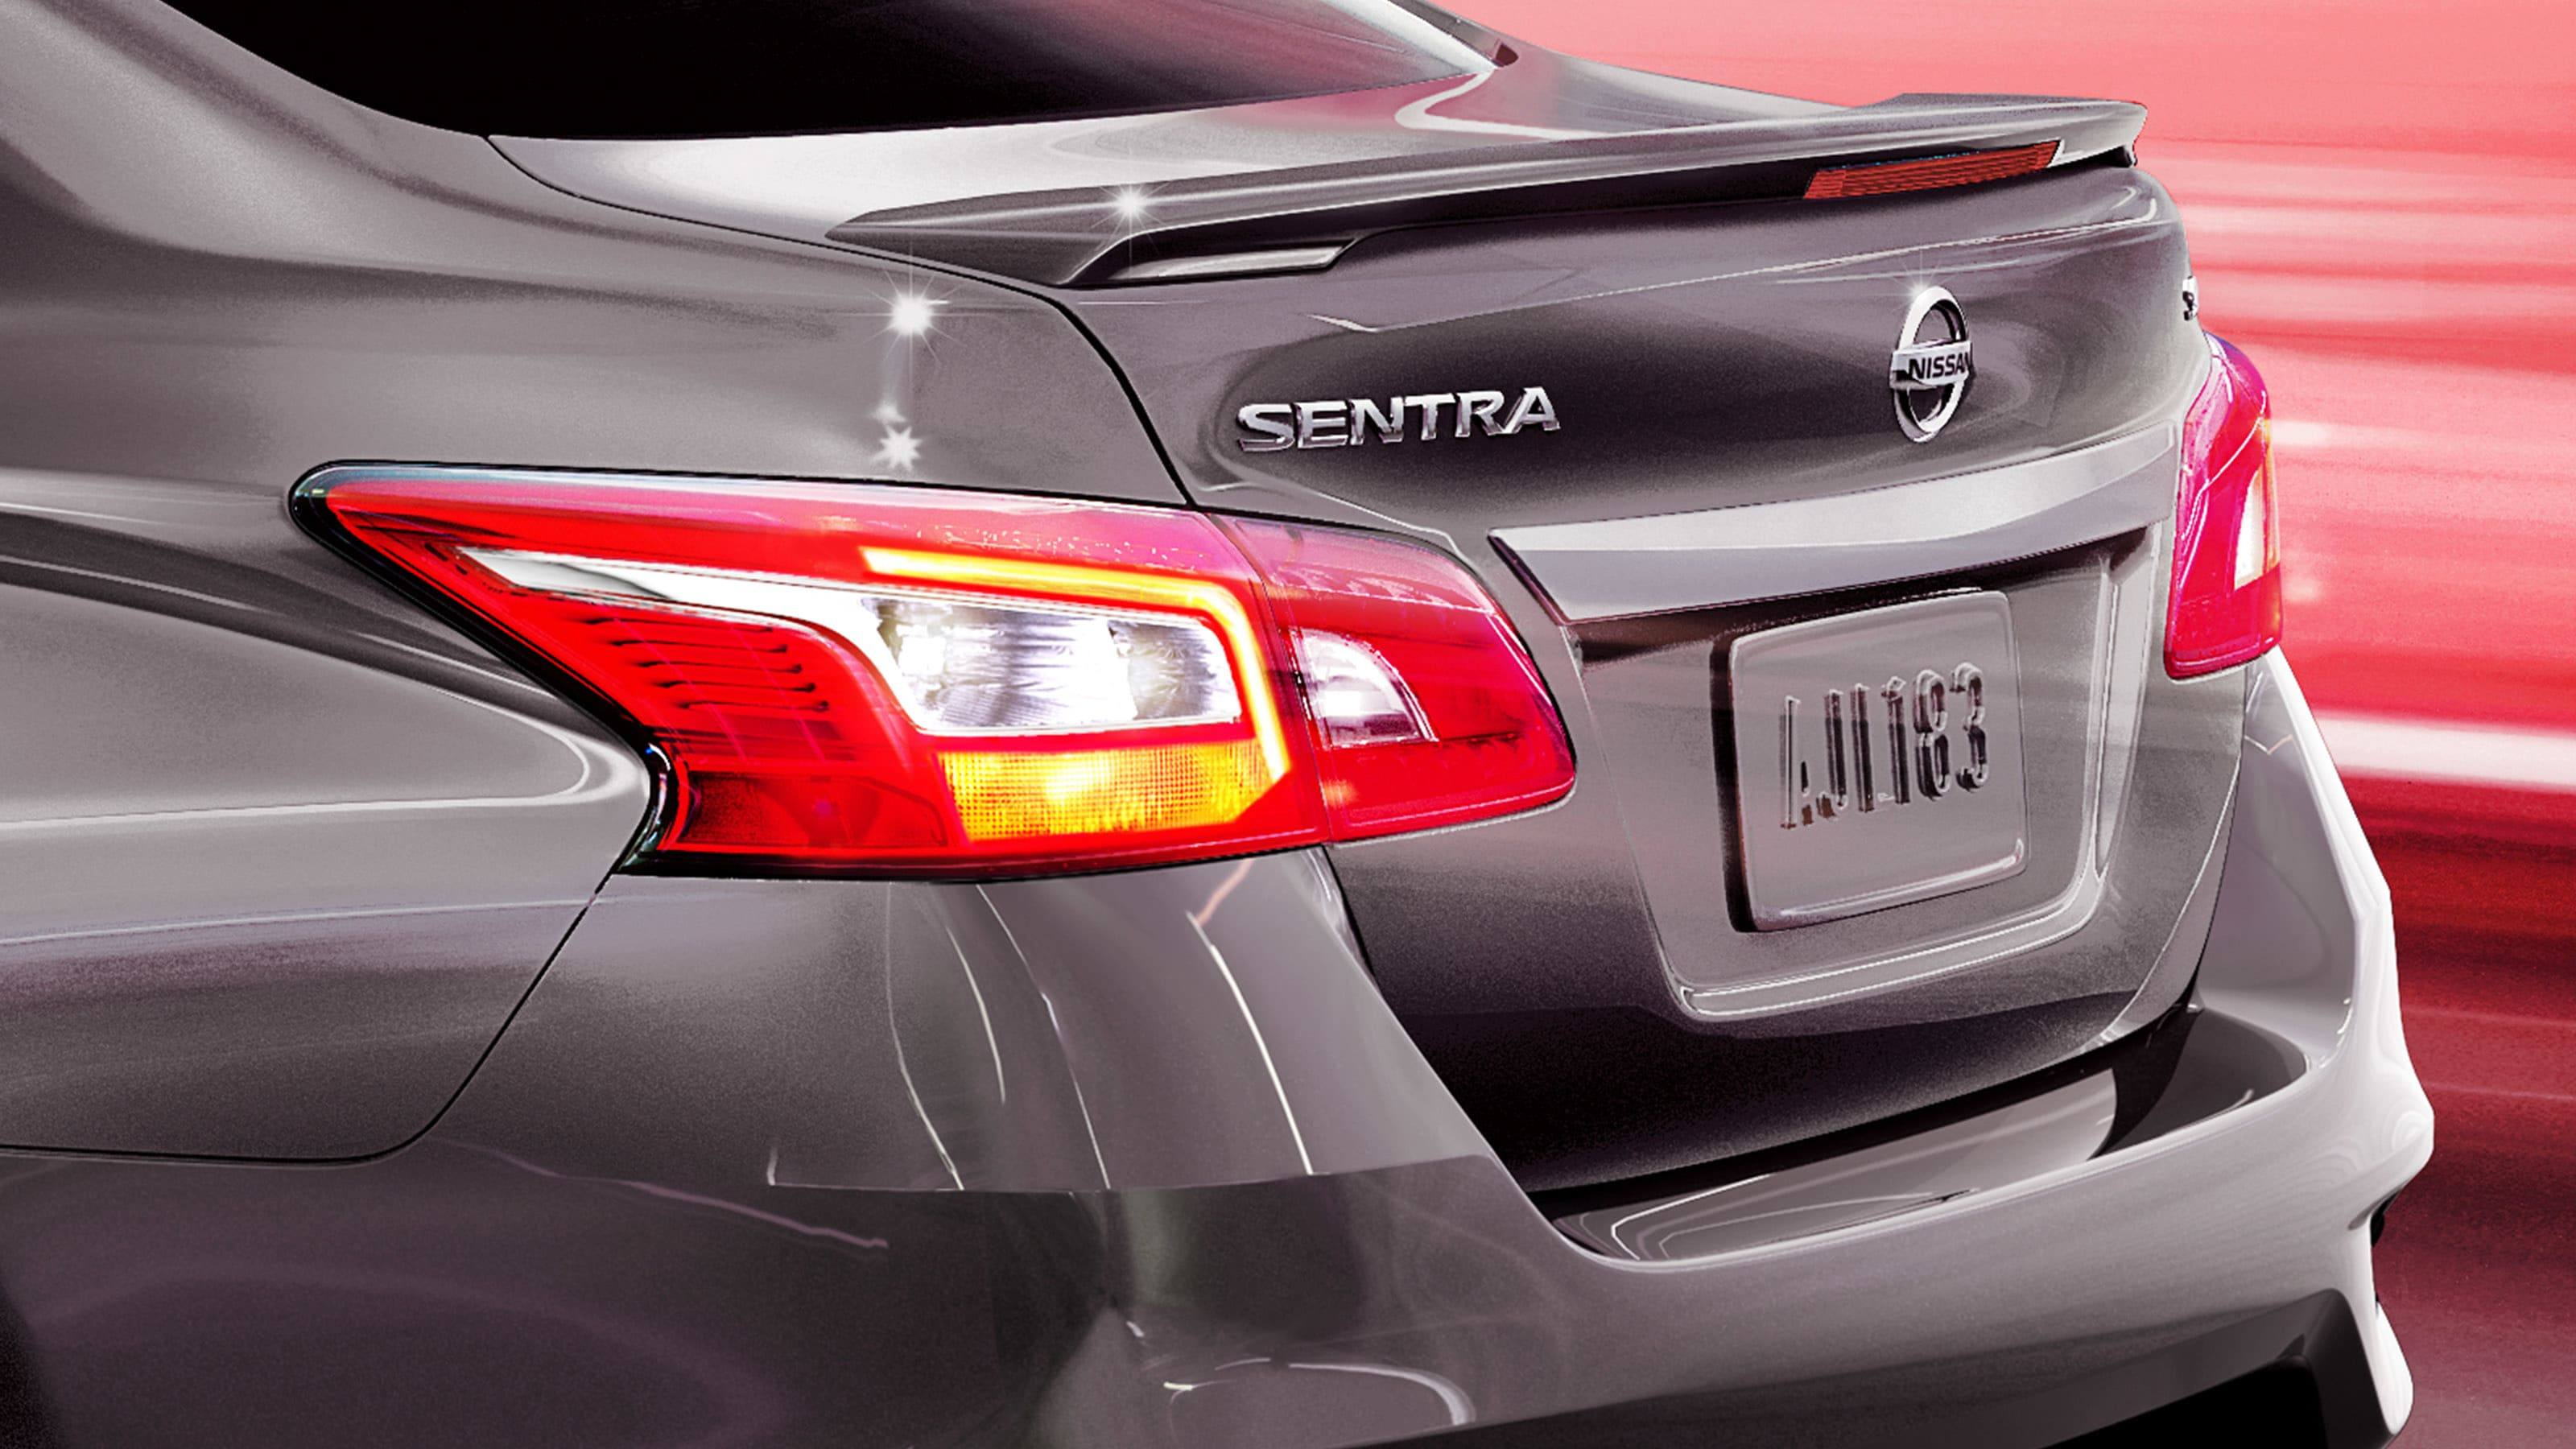 New 2019 Nissan Sentra LED Taillights